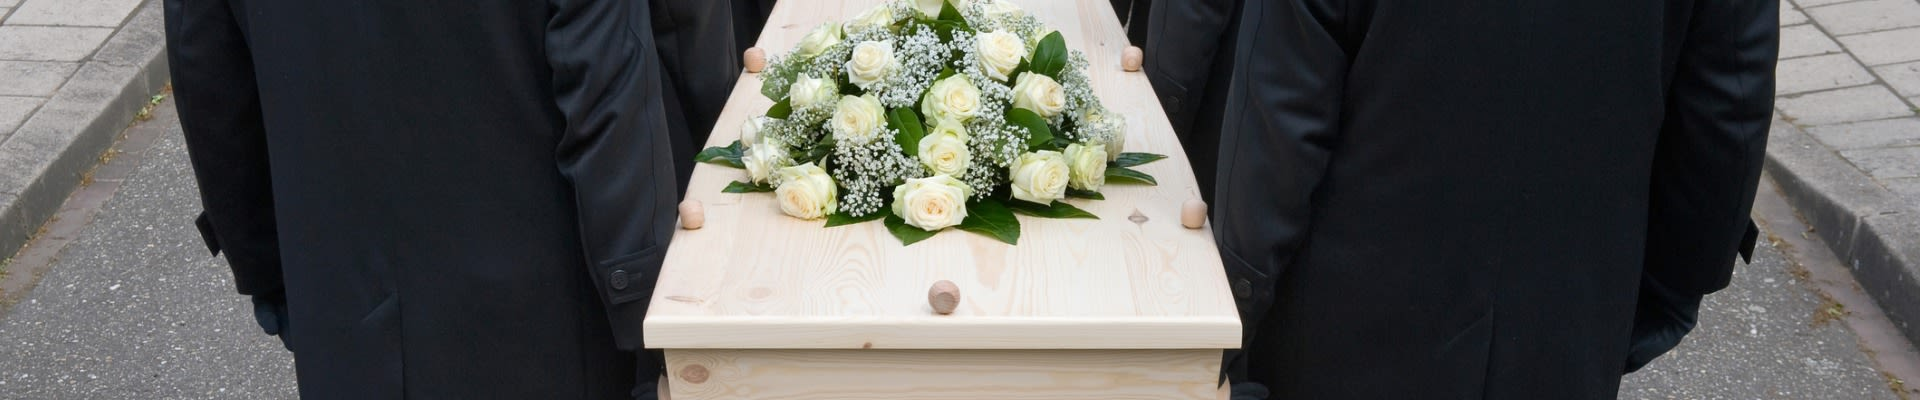 Shine Lawyers | Funeral arrangments